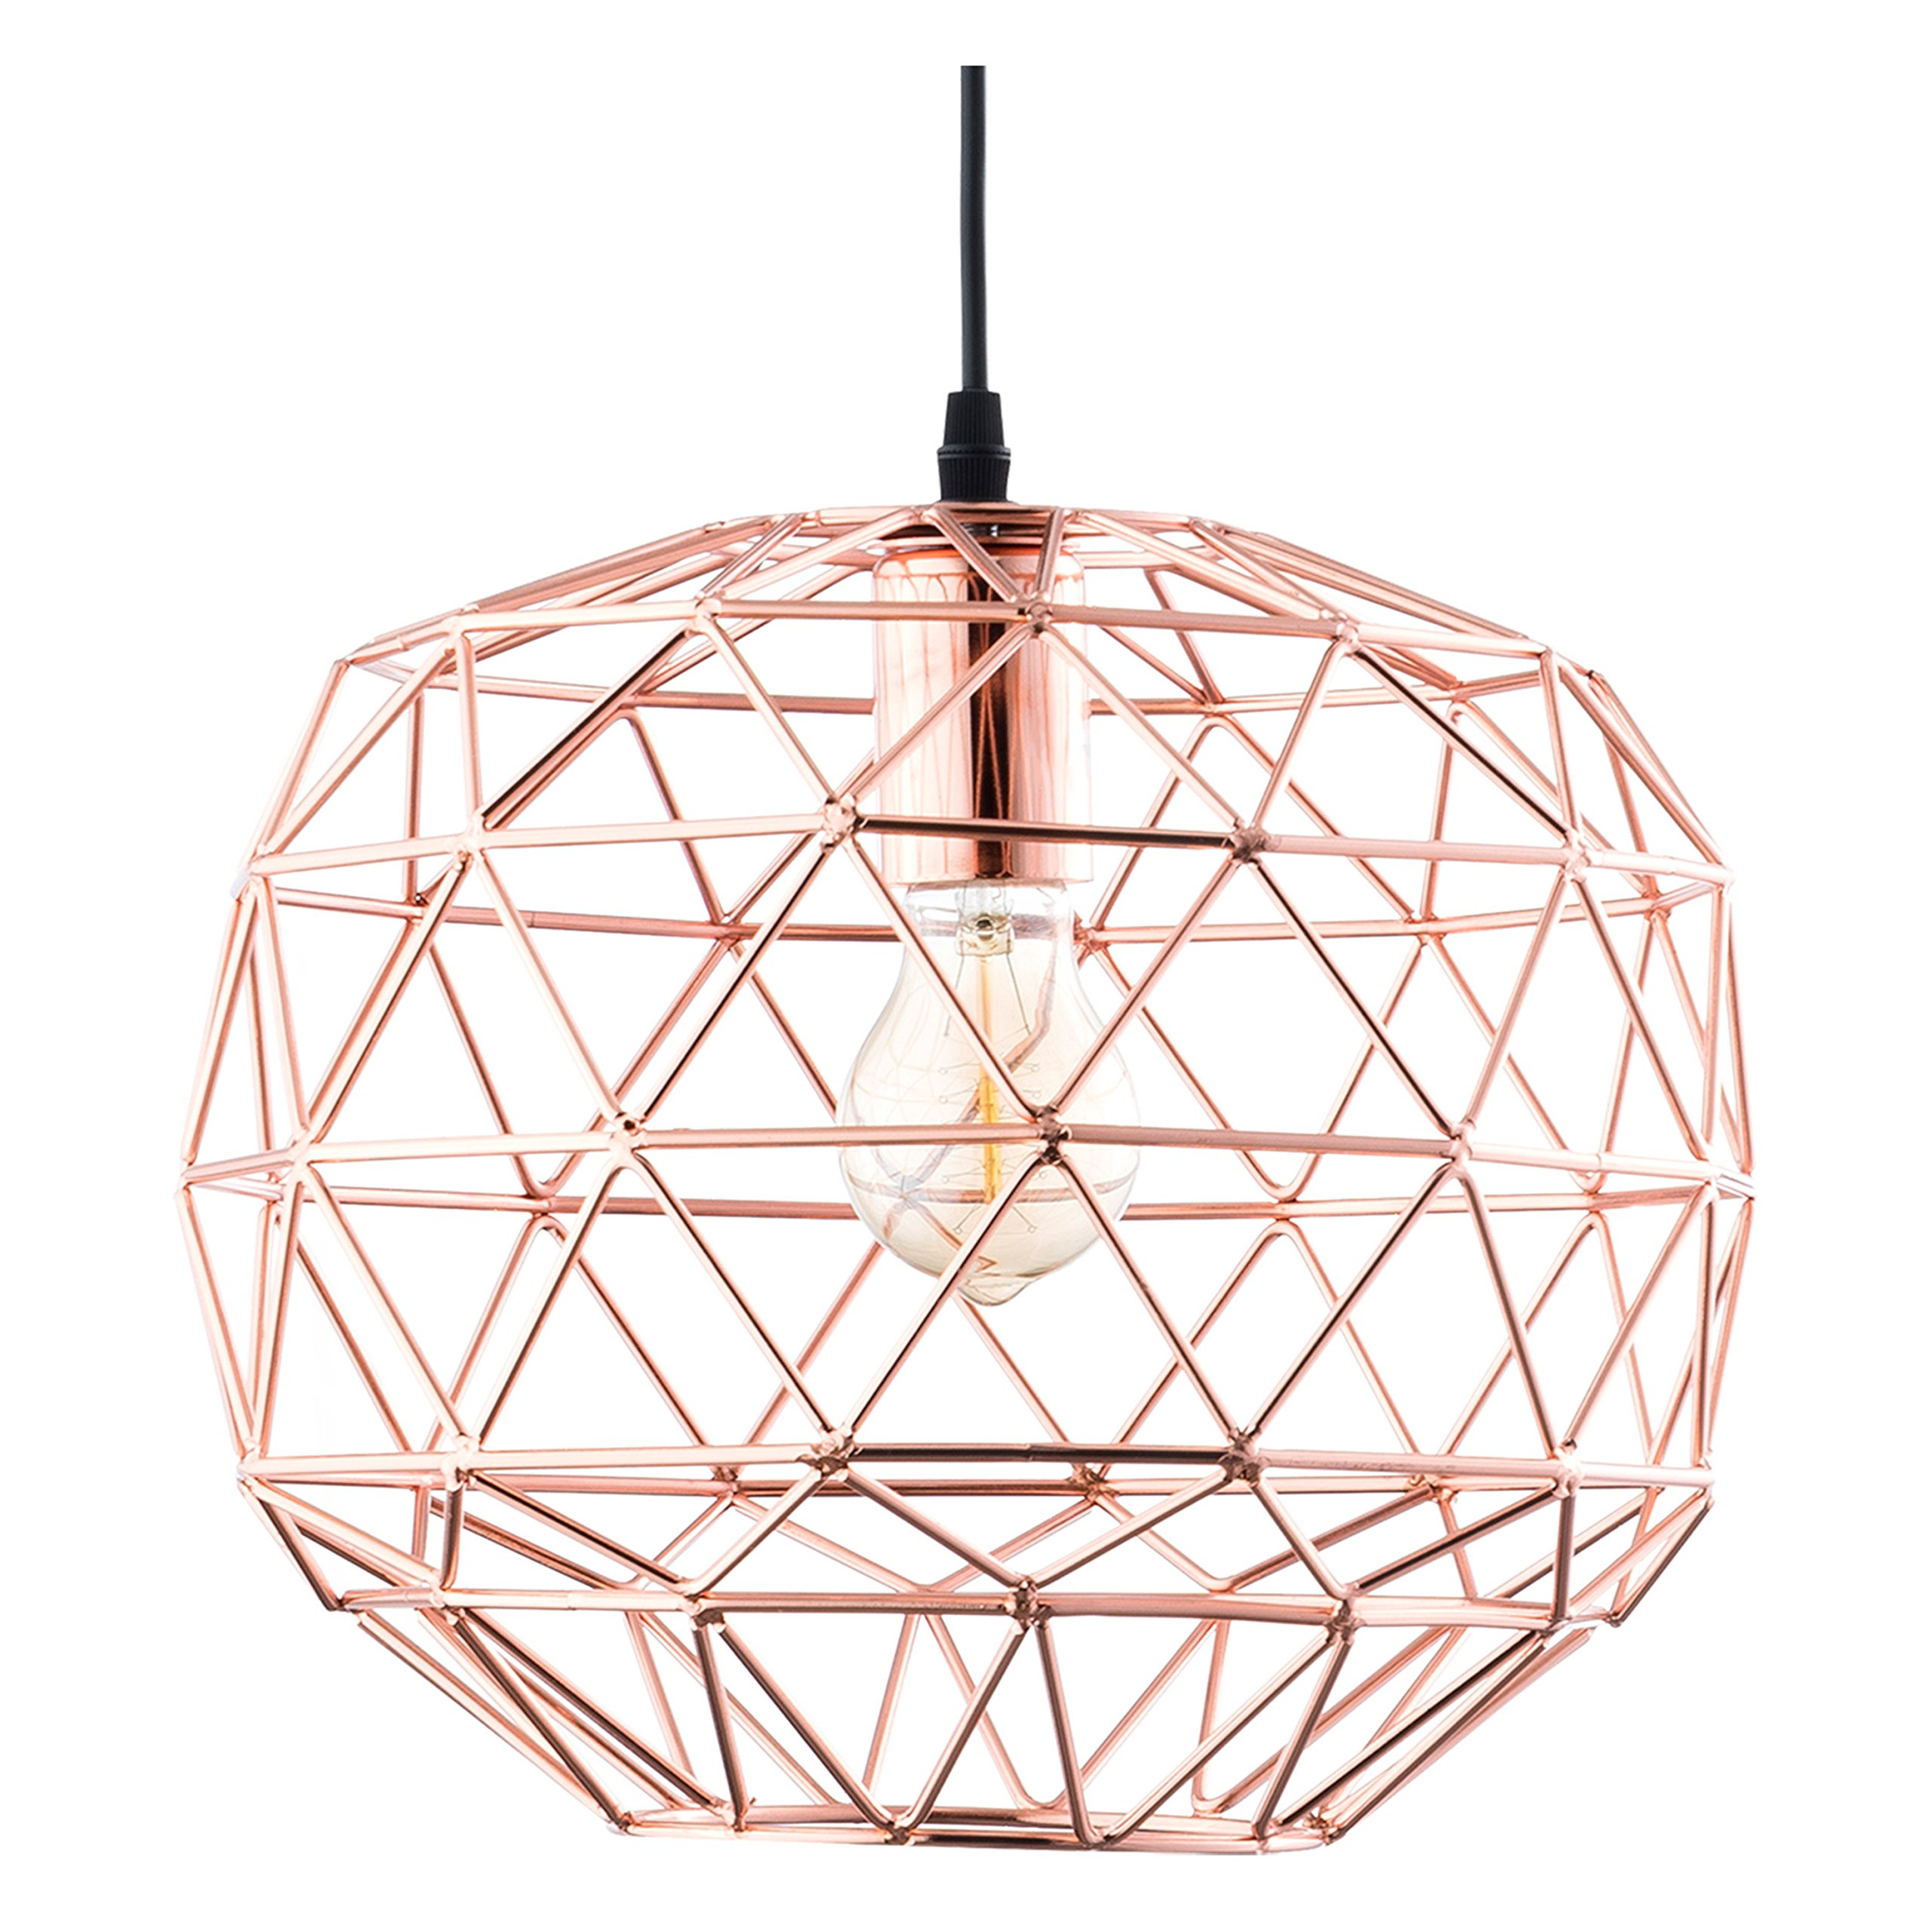 Light Society Caffrey Geometric Pendant Light, Rose Gold, Modern Industrial Lighting Fixture (LS-C135)